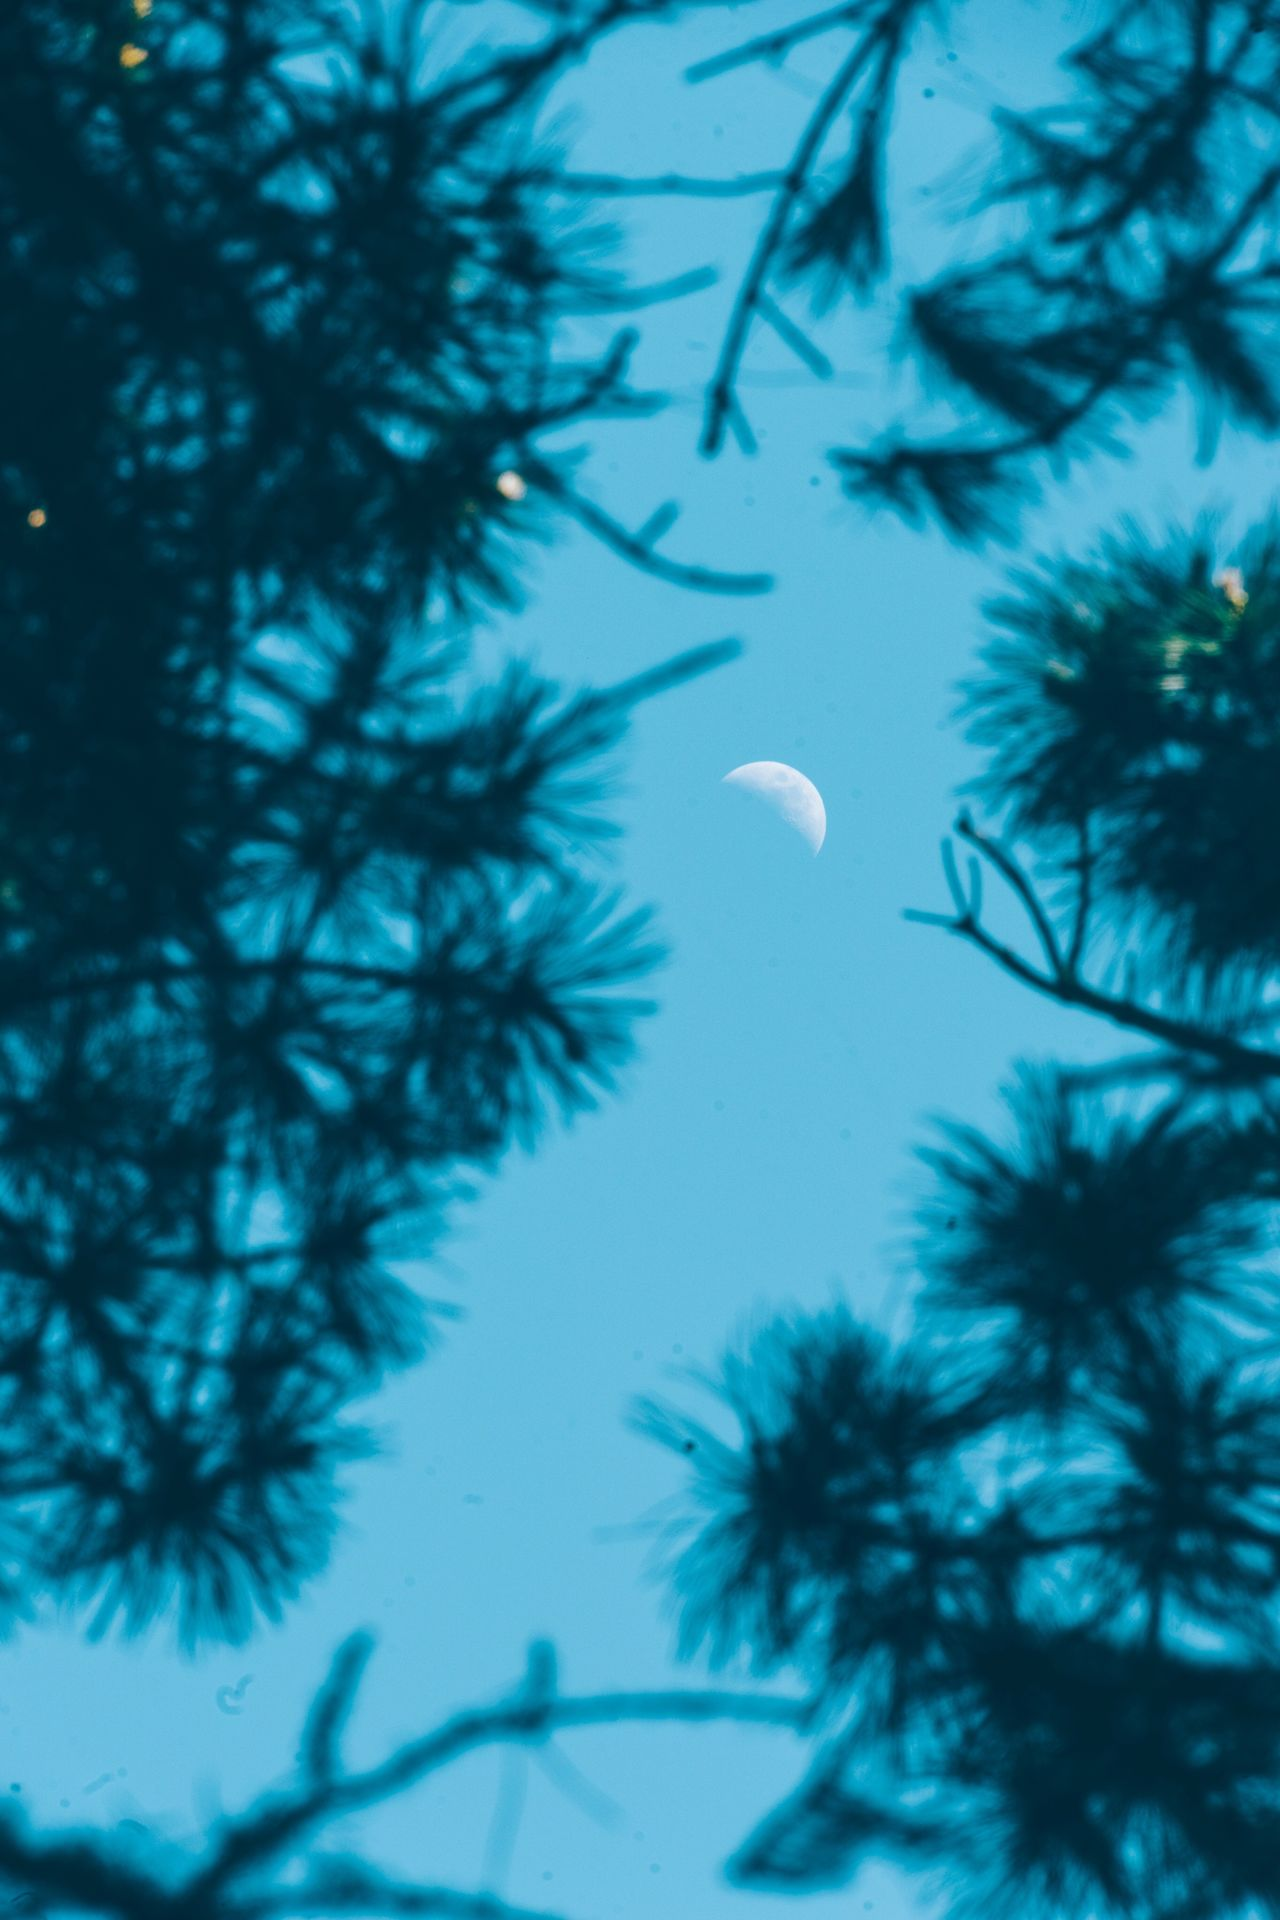 Moon Tree Nature Low Angle View Beauty In Nature Half Moon Crescent No People Branch Sky Scenics Outdoors Night Astronomy Close-up Vintage Hike Rural Poetry